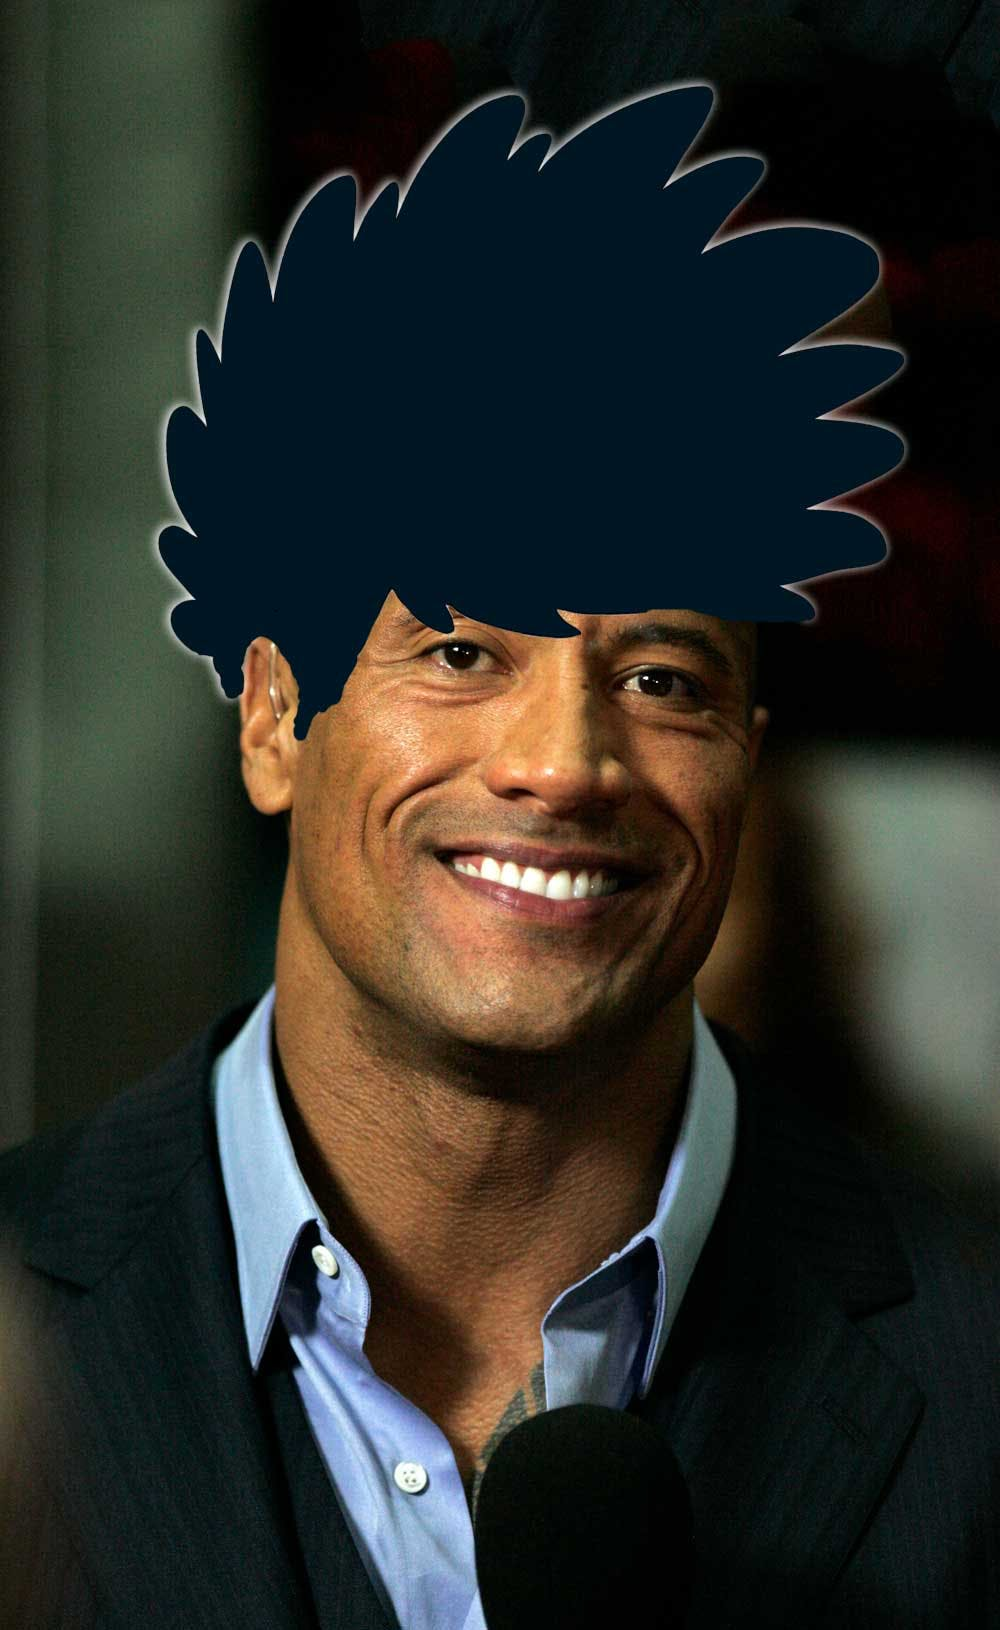 The Rock with Dennis the Menace's hair